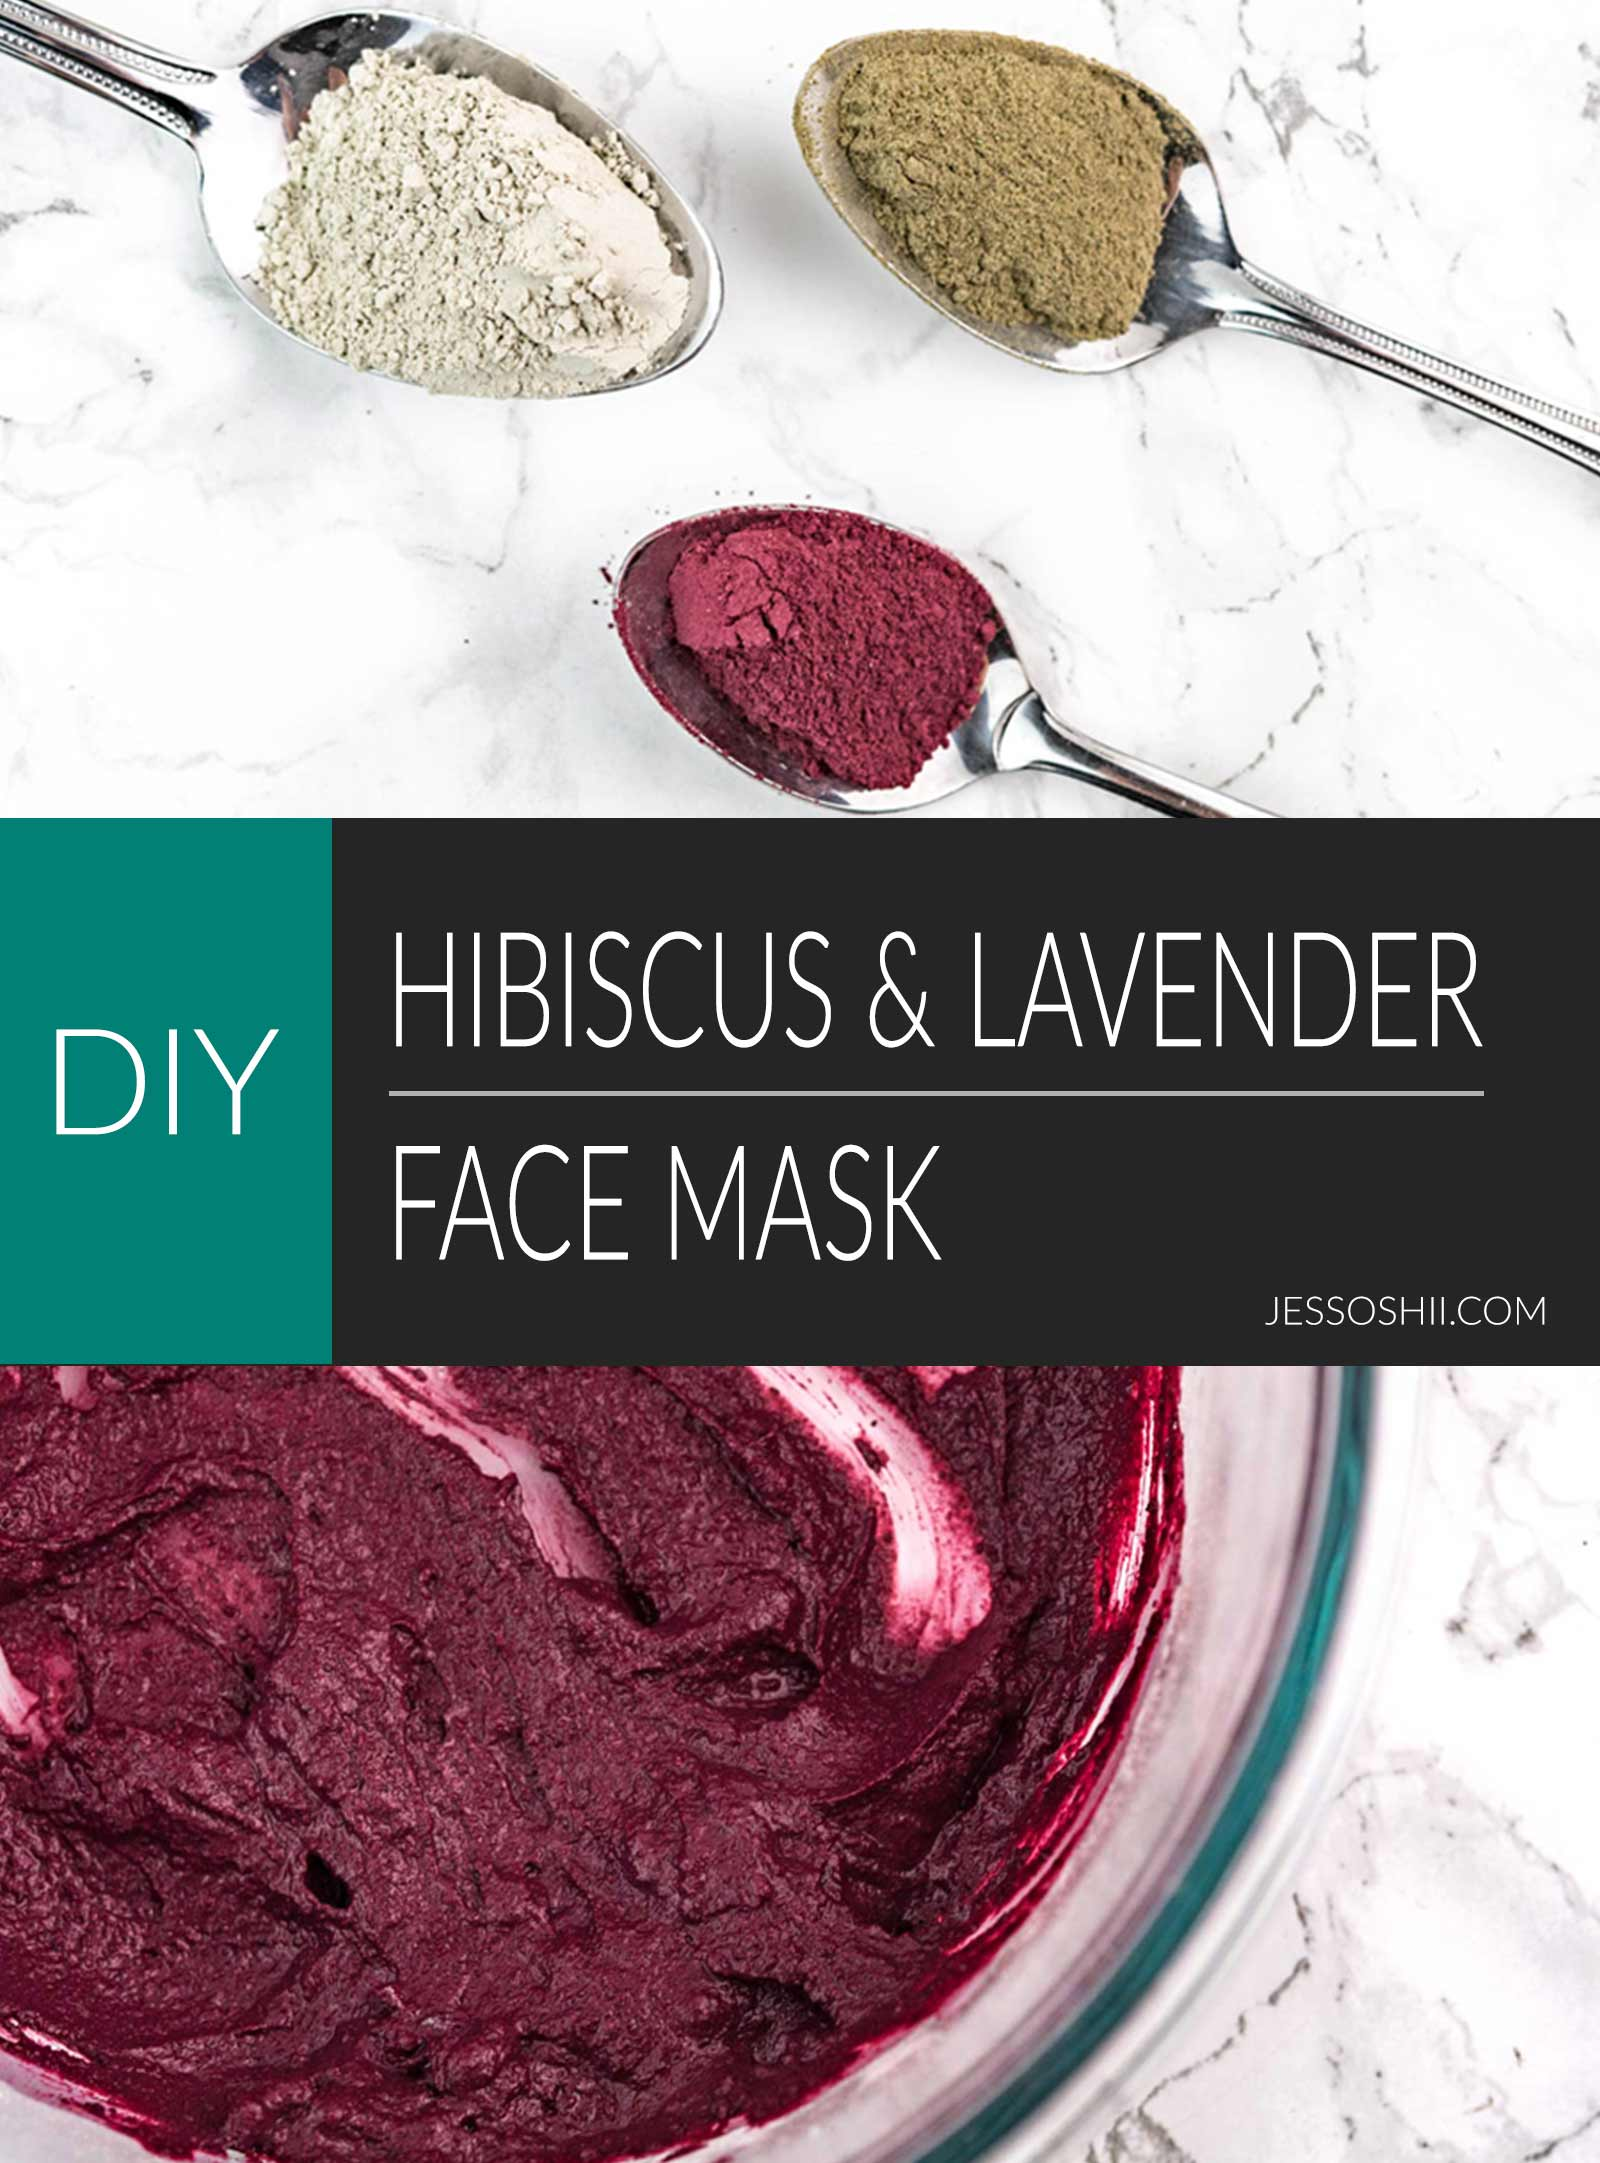 hibiscus and lavendar face mask recipe and how to